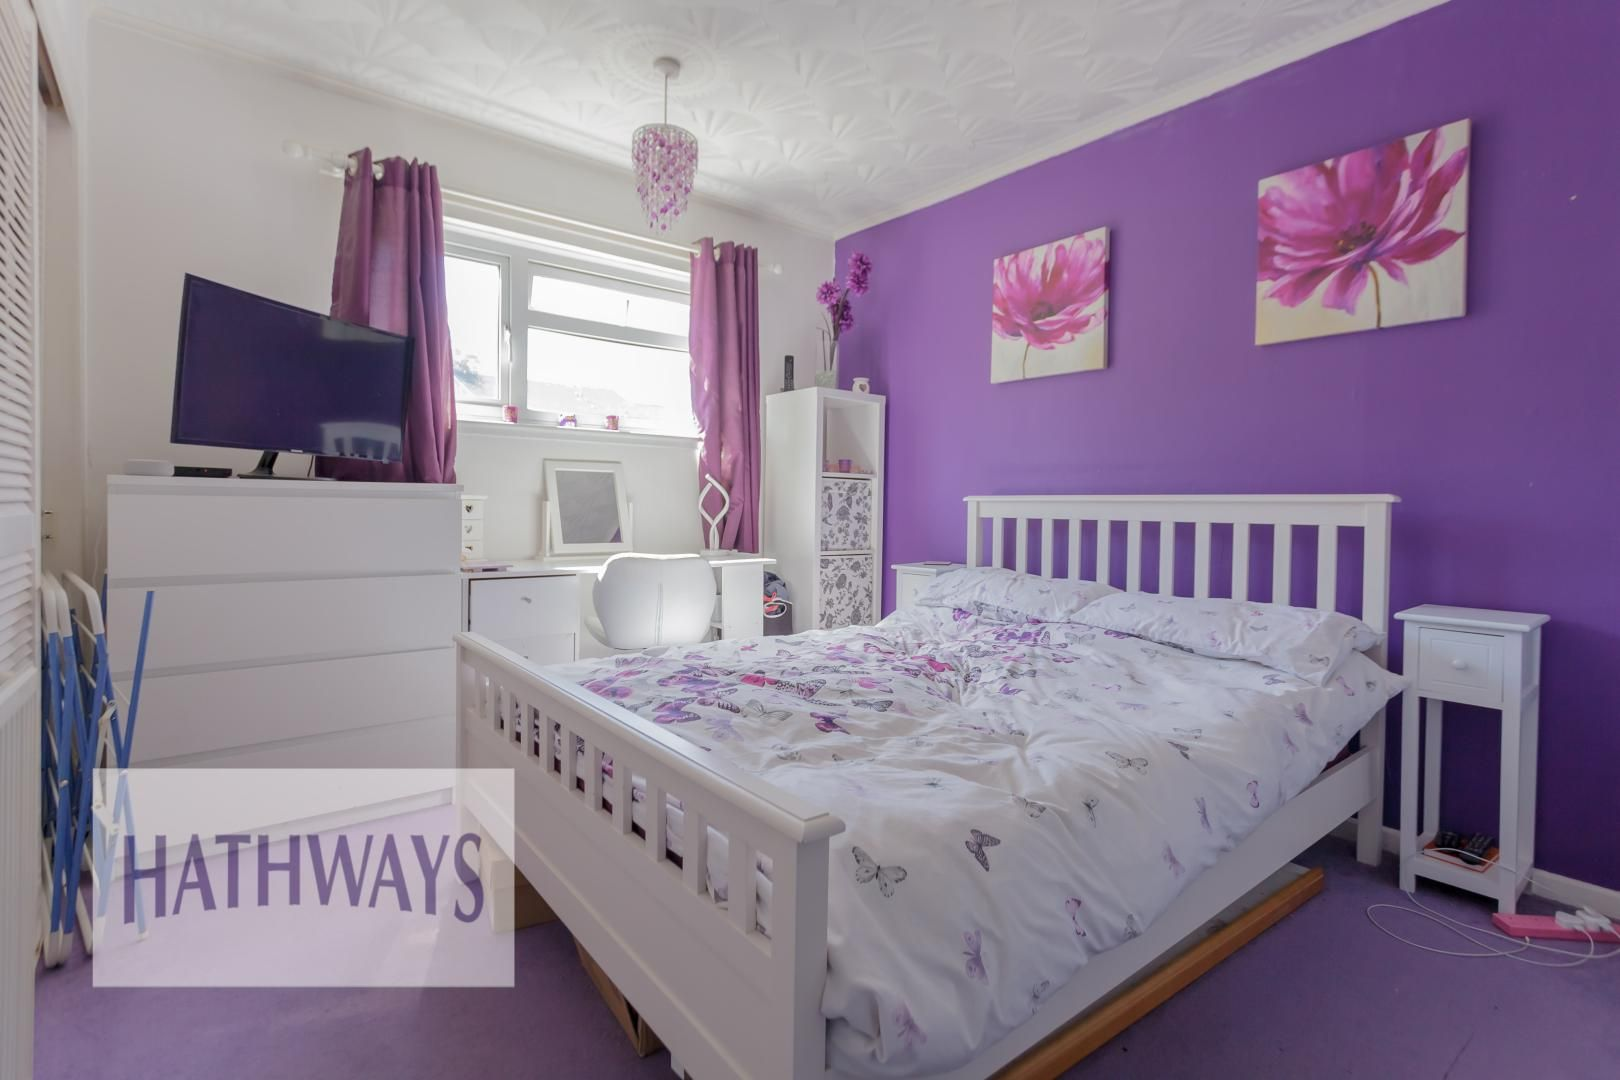 3 bed  for sale in East Roedin 27